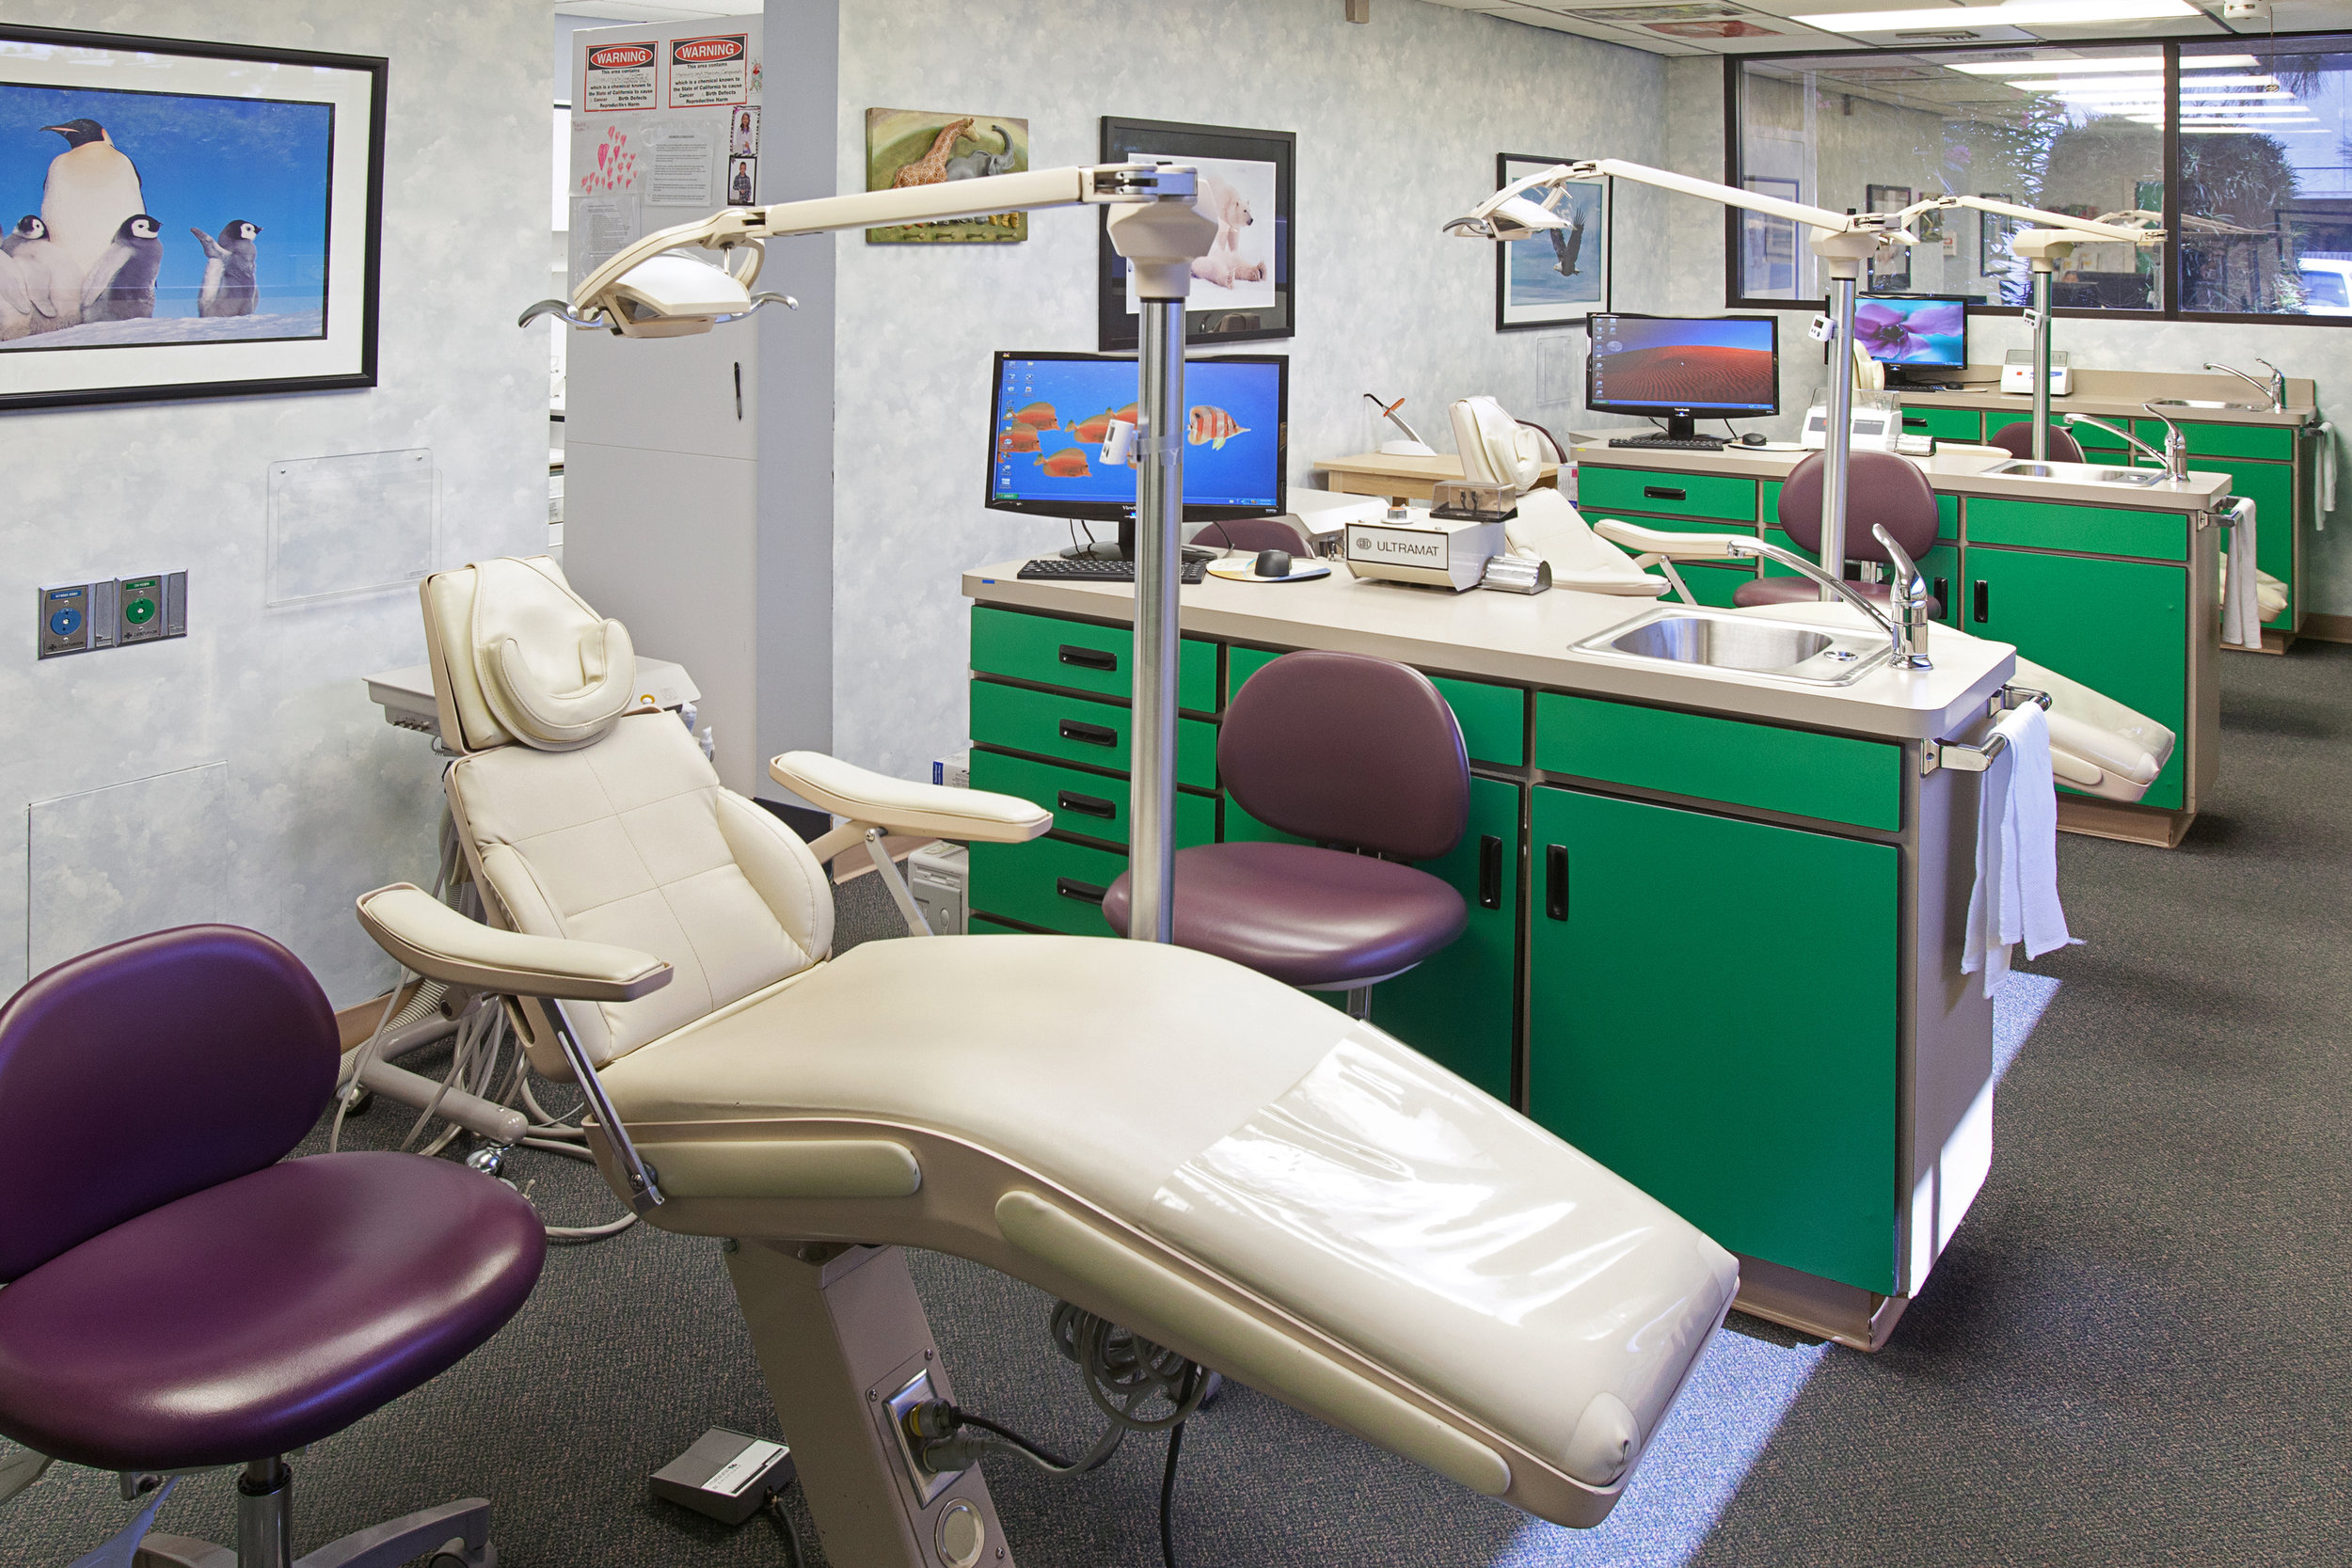 we offer preventive education,sealants, fluoride treatments,tooth-colored fillings and regular check-ups, as well as orthodontics and oral surgery.